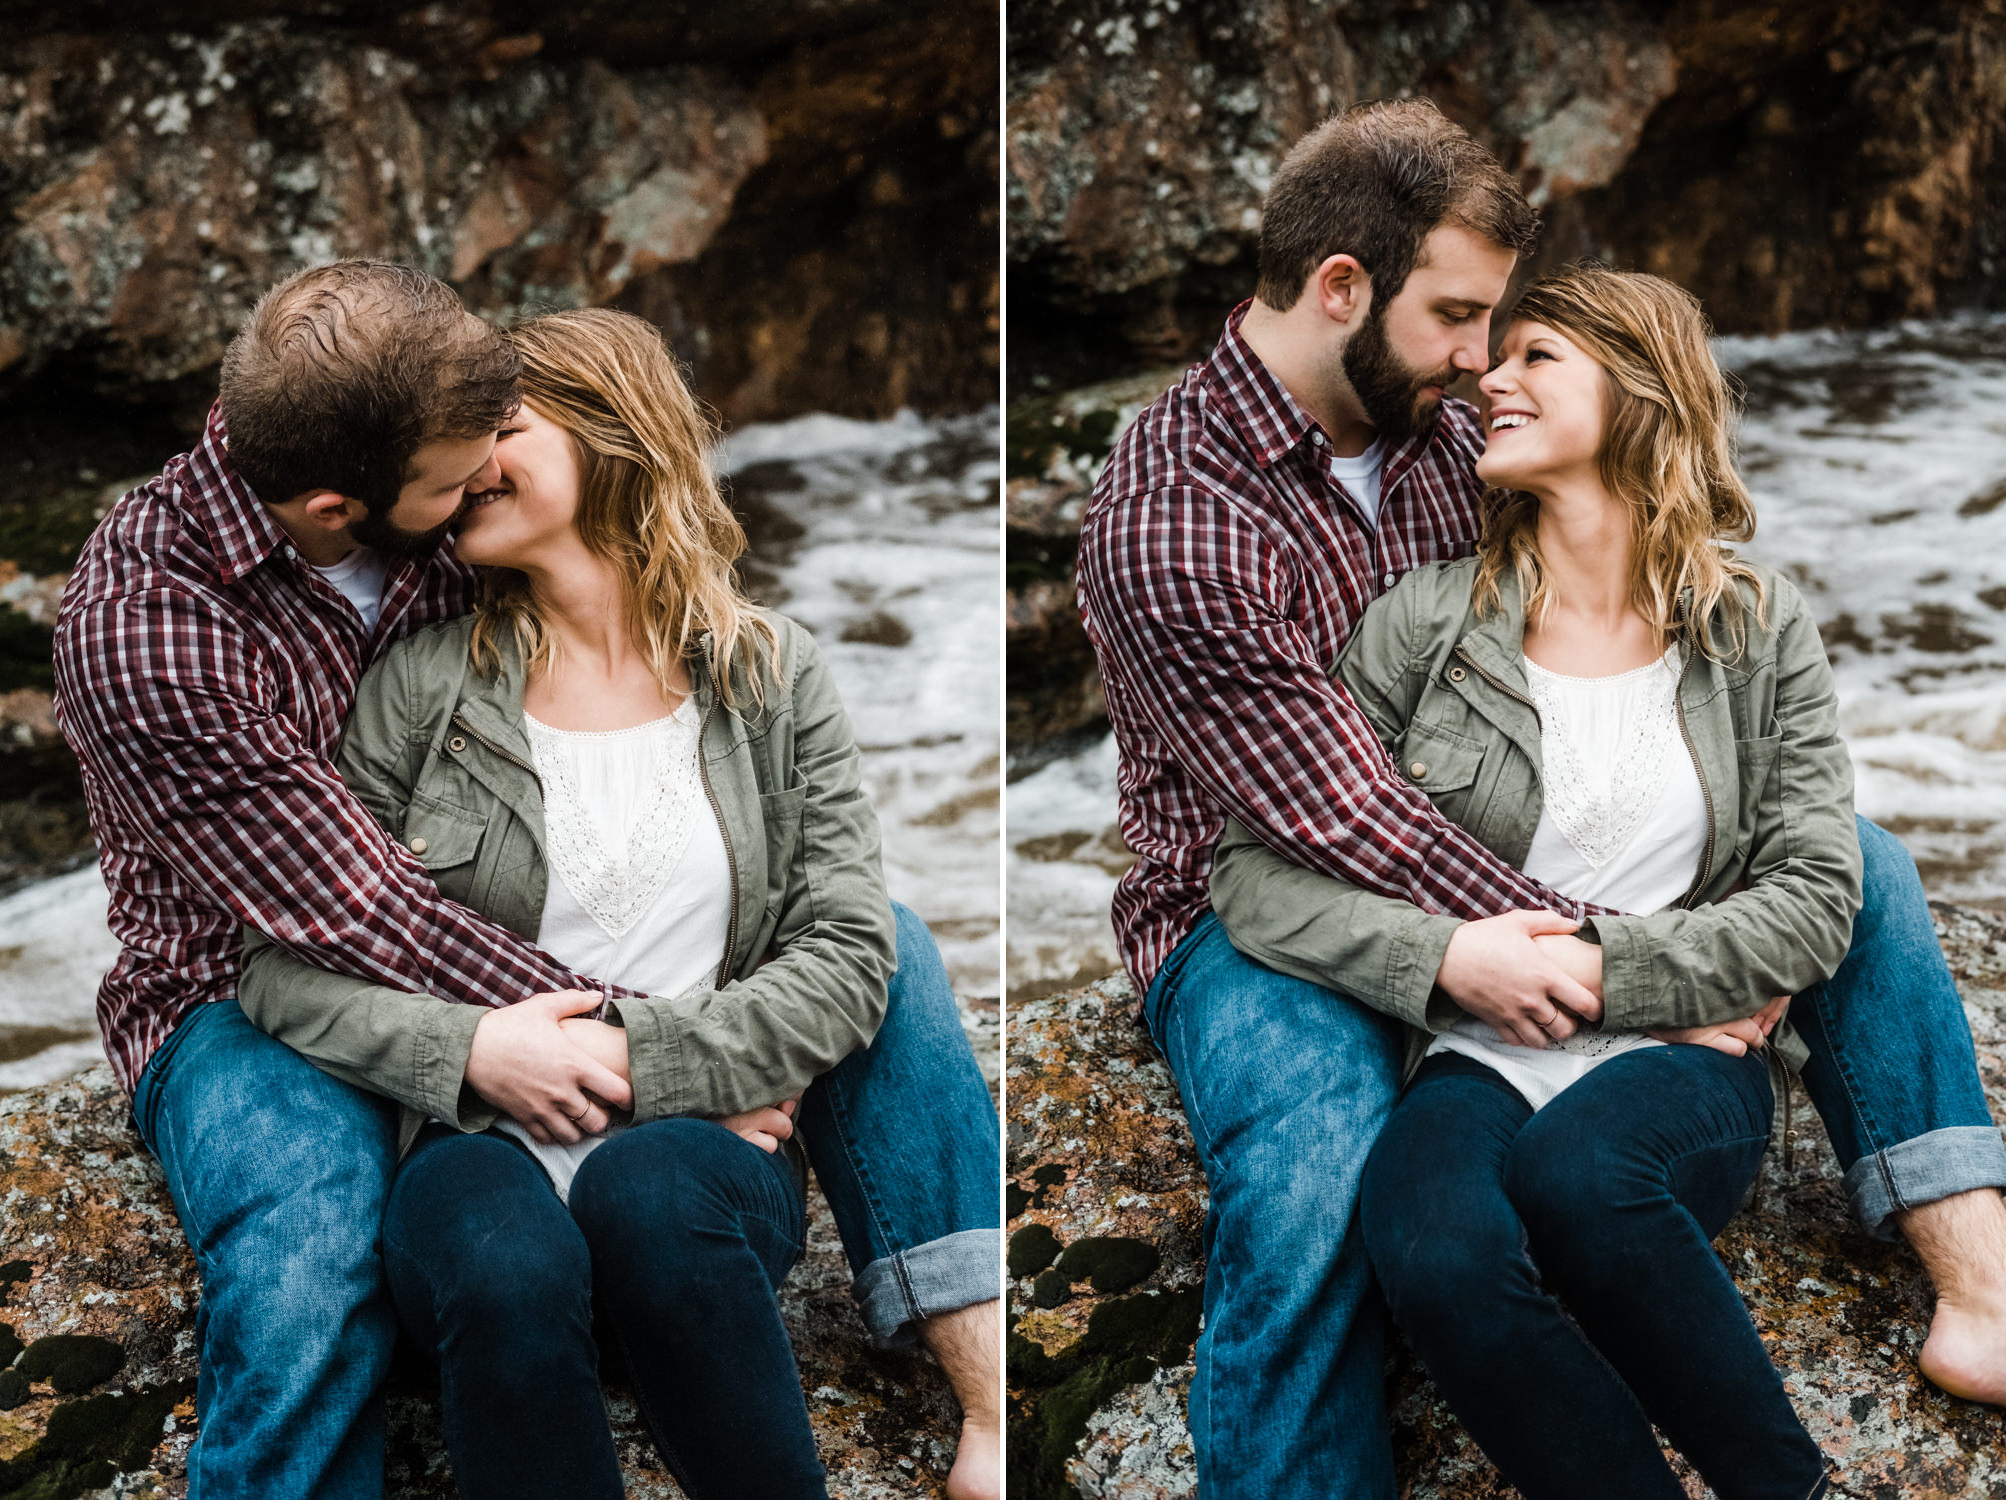 Oklahoma Engagement-Neal Dieker-Oklahoma Wedding Photography-Wichita Mountains-Wichita, Kansas Portrait Photographer-131.jpg